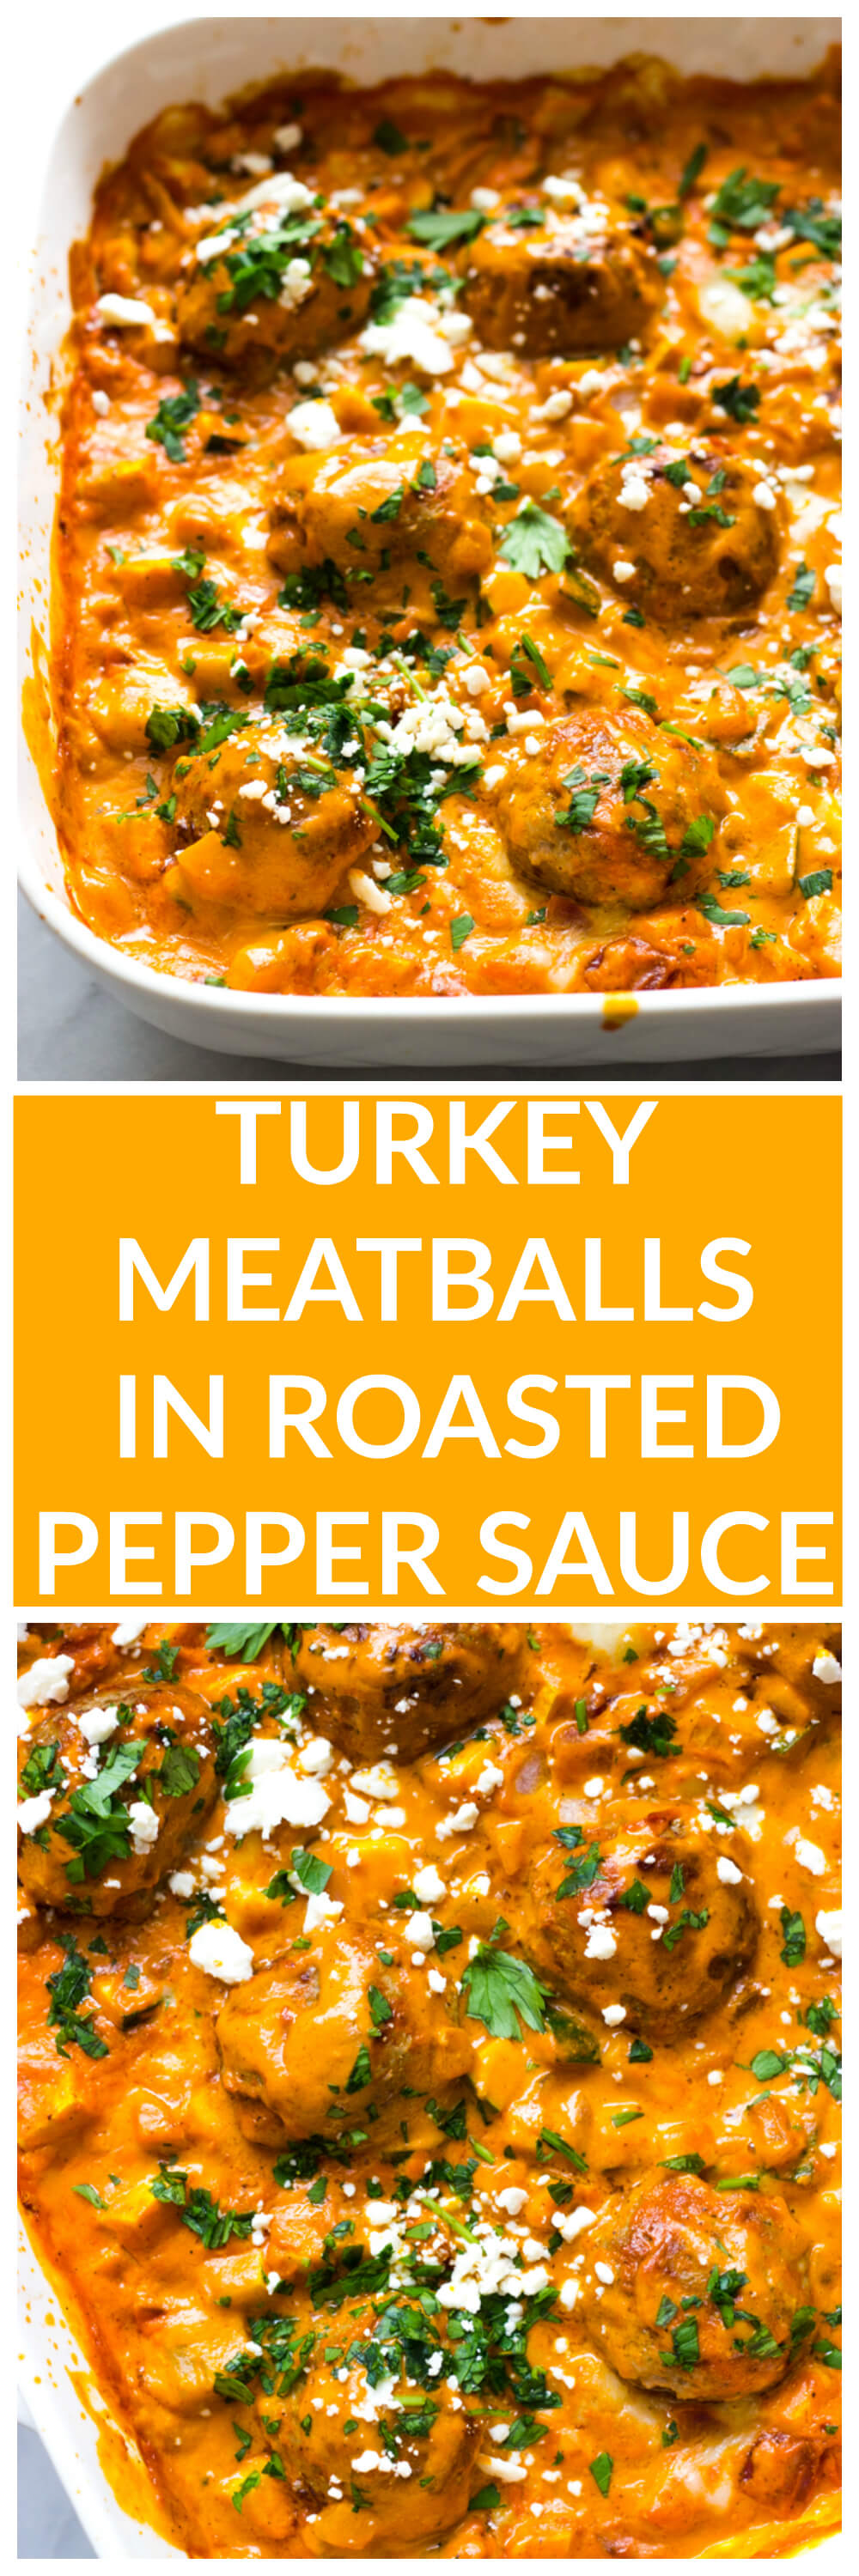 Turkey Meatballs in Roasted Pepper Sauce - made with no cream or cheese, this roasted pepper sauce is made with cashews then baked with healthy turkey meatballs and simple veggie hash | littlebroken.com @littlebroken